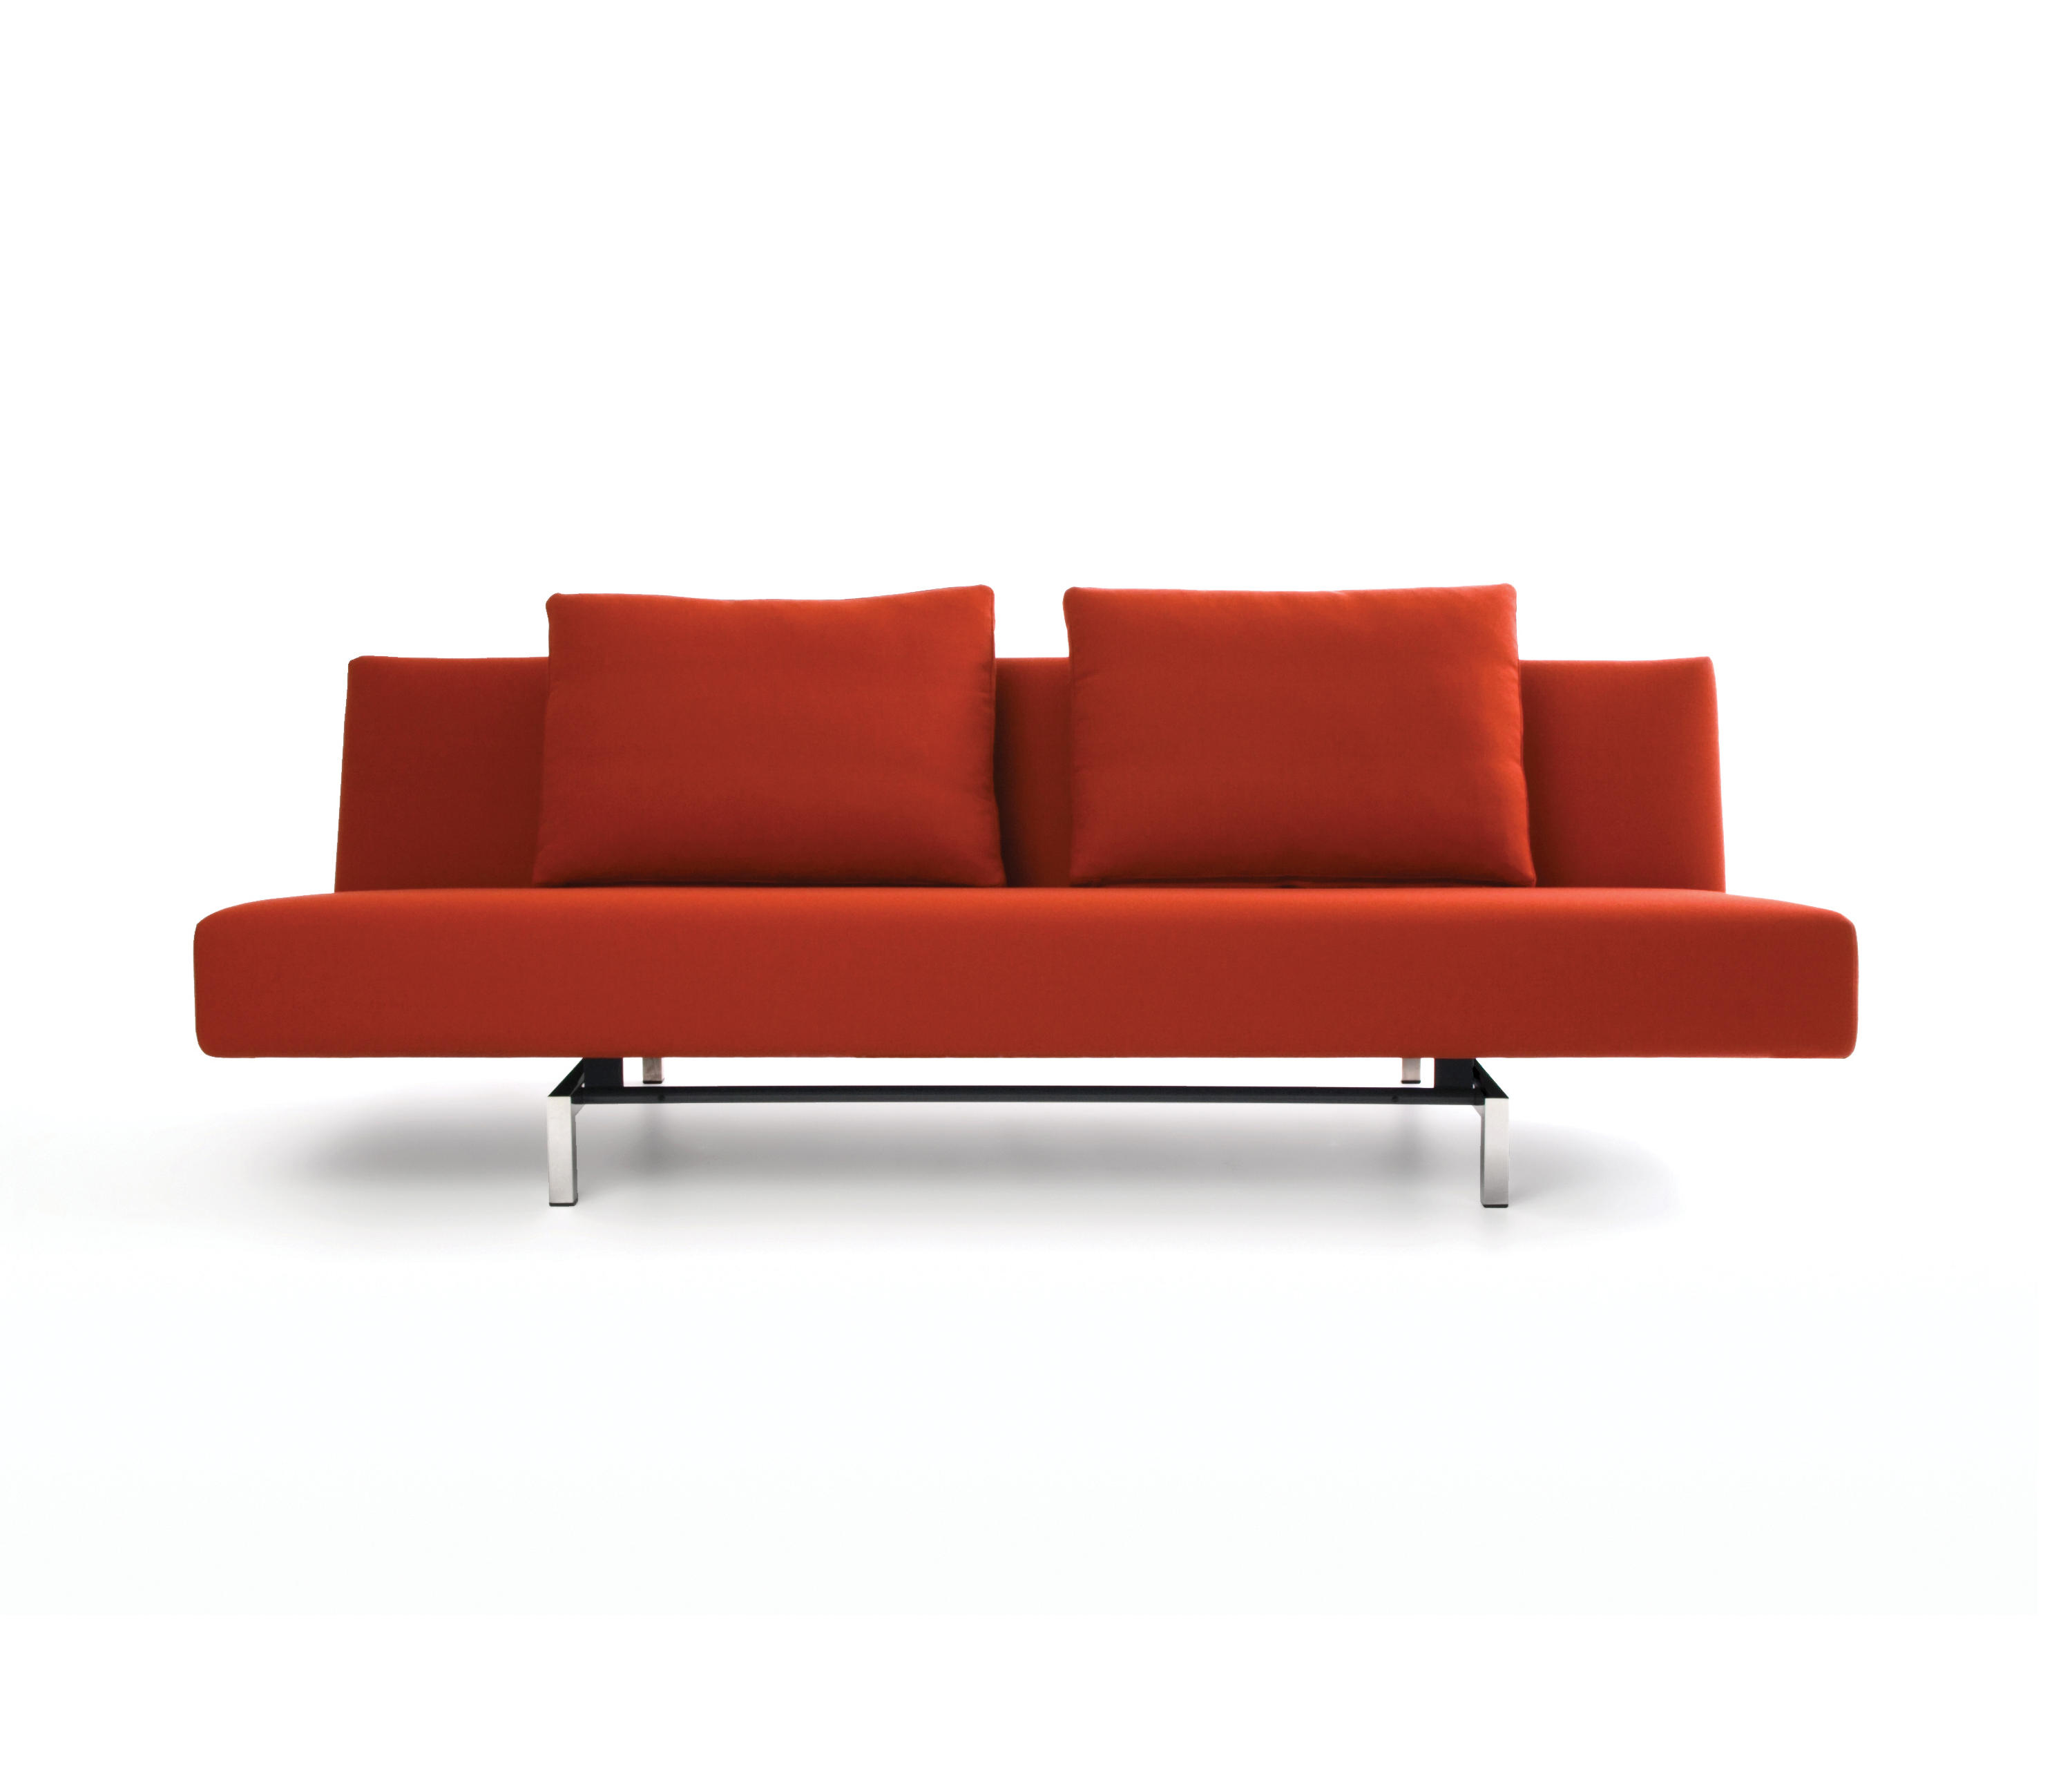 Sofa sitzhhe 50 cm brhl will exhibit at maison u objet in for Schlafcouch lattenrost